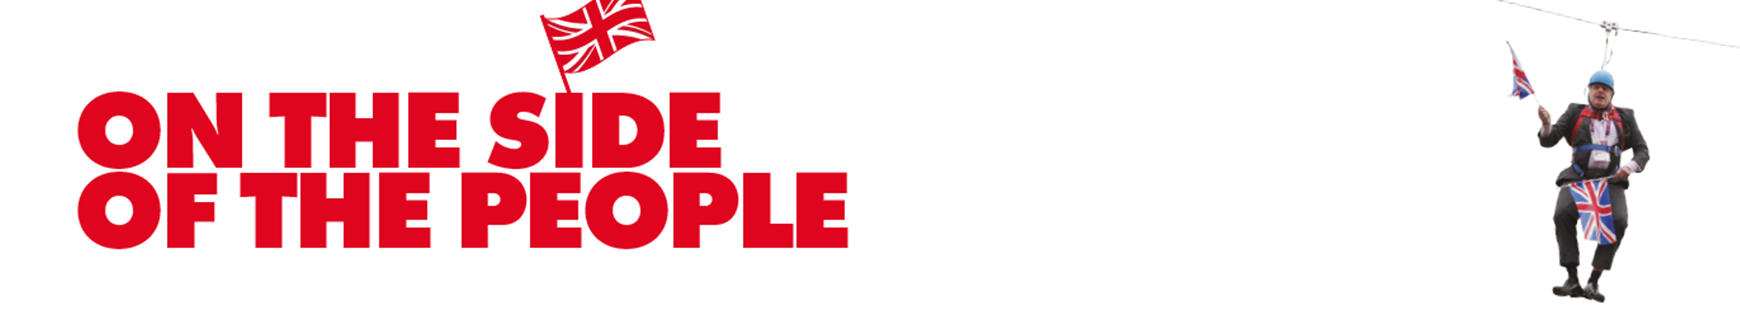 people's side